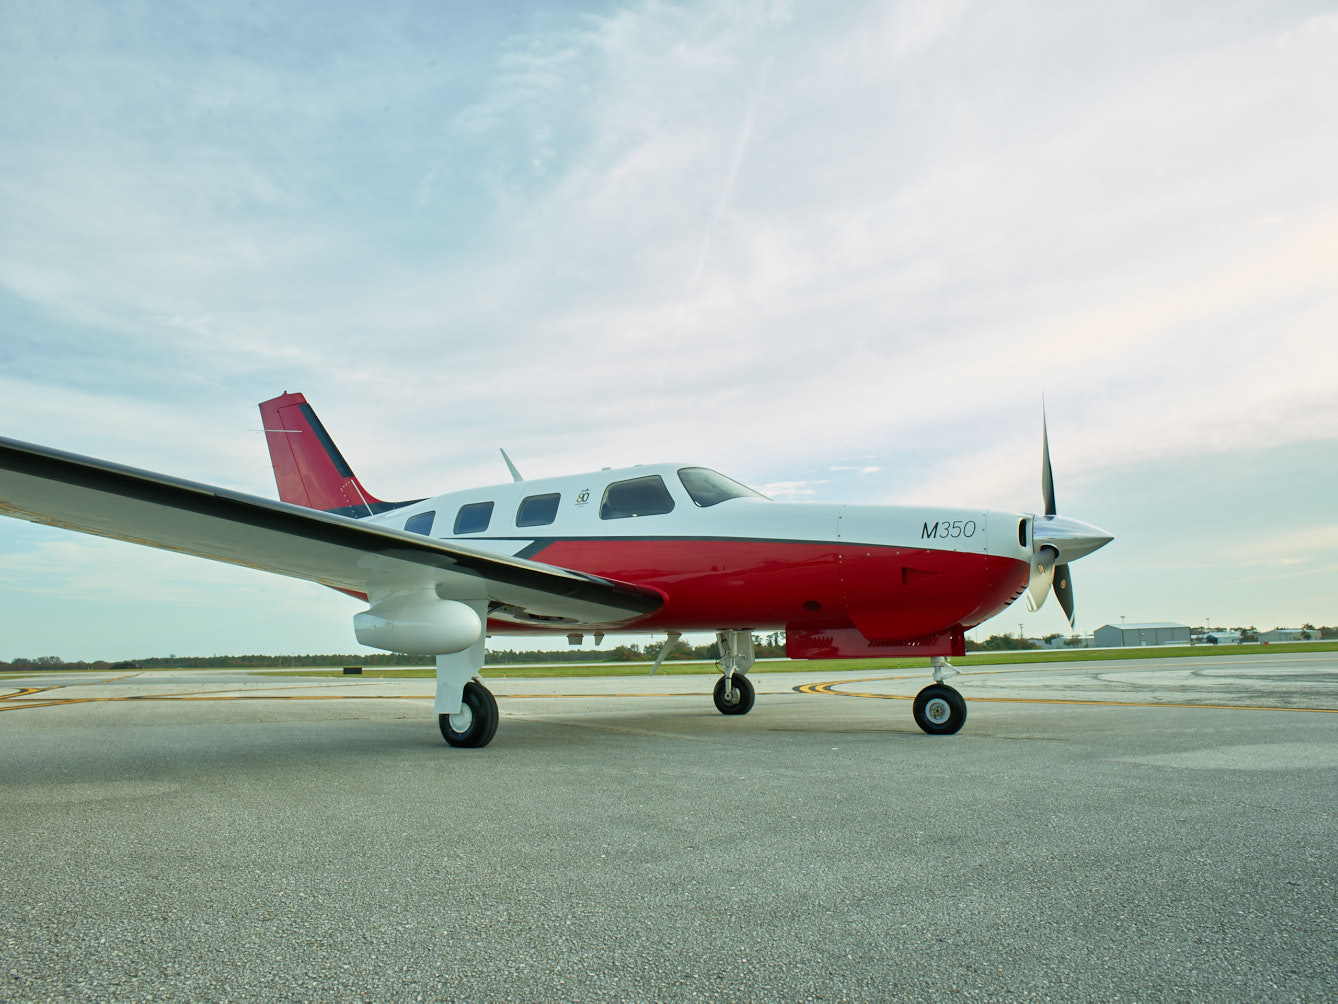 Aircraft Listing - M Class M350 listed for sale